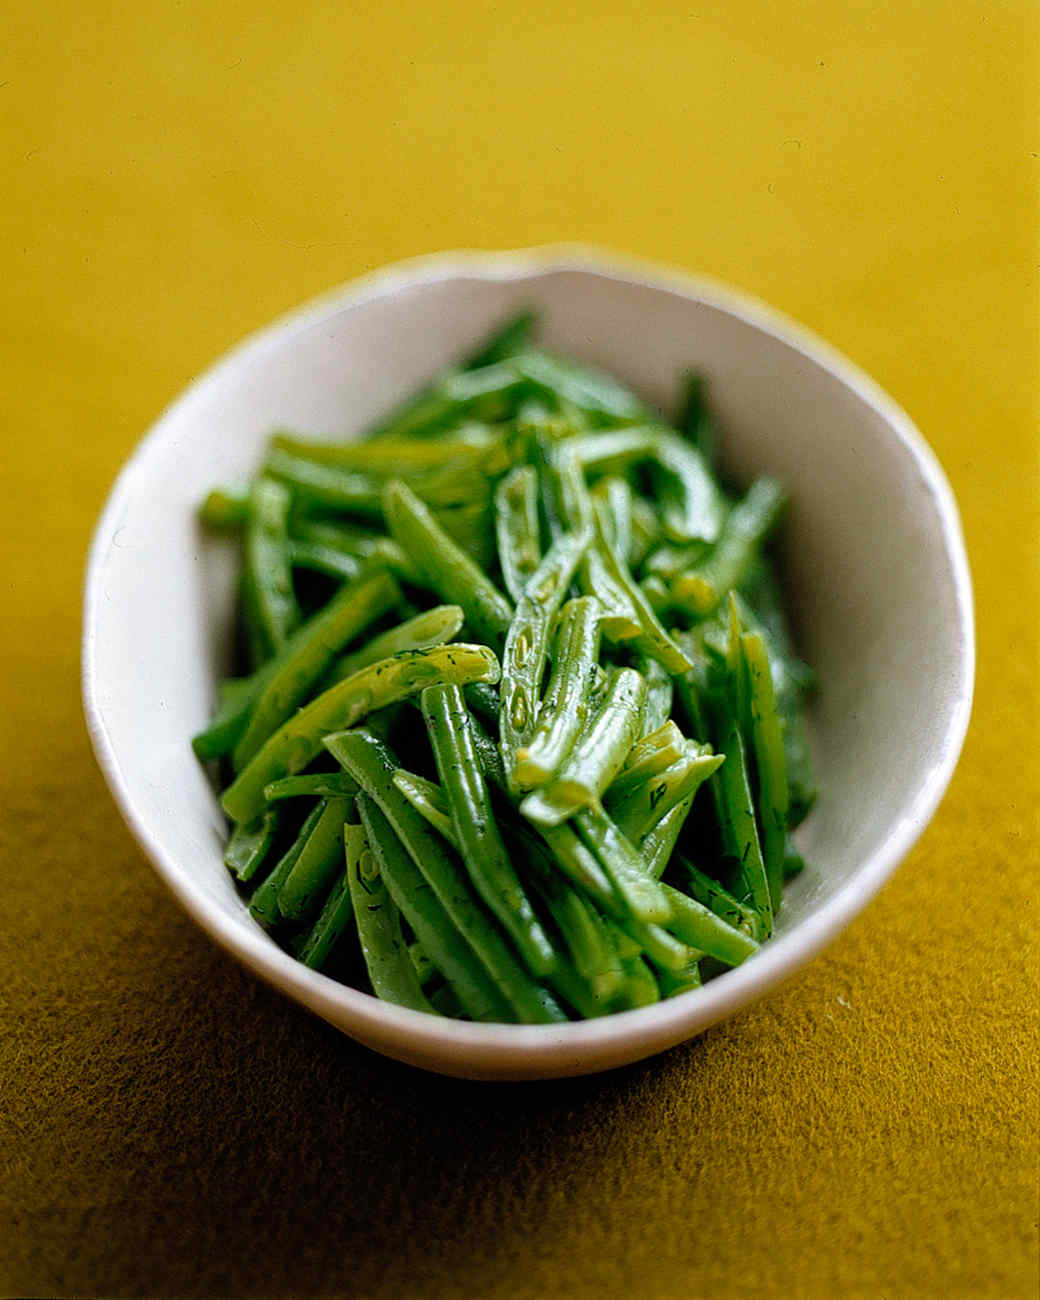 French-Cut Green Beans With Dill Butter